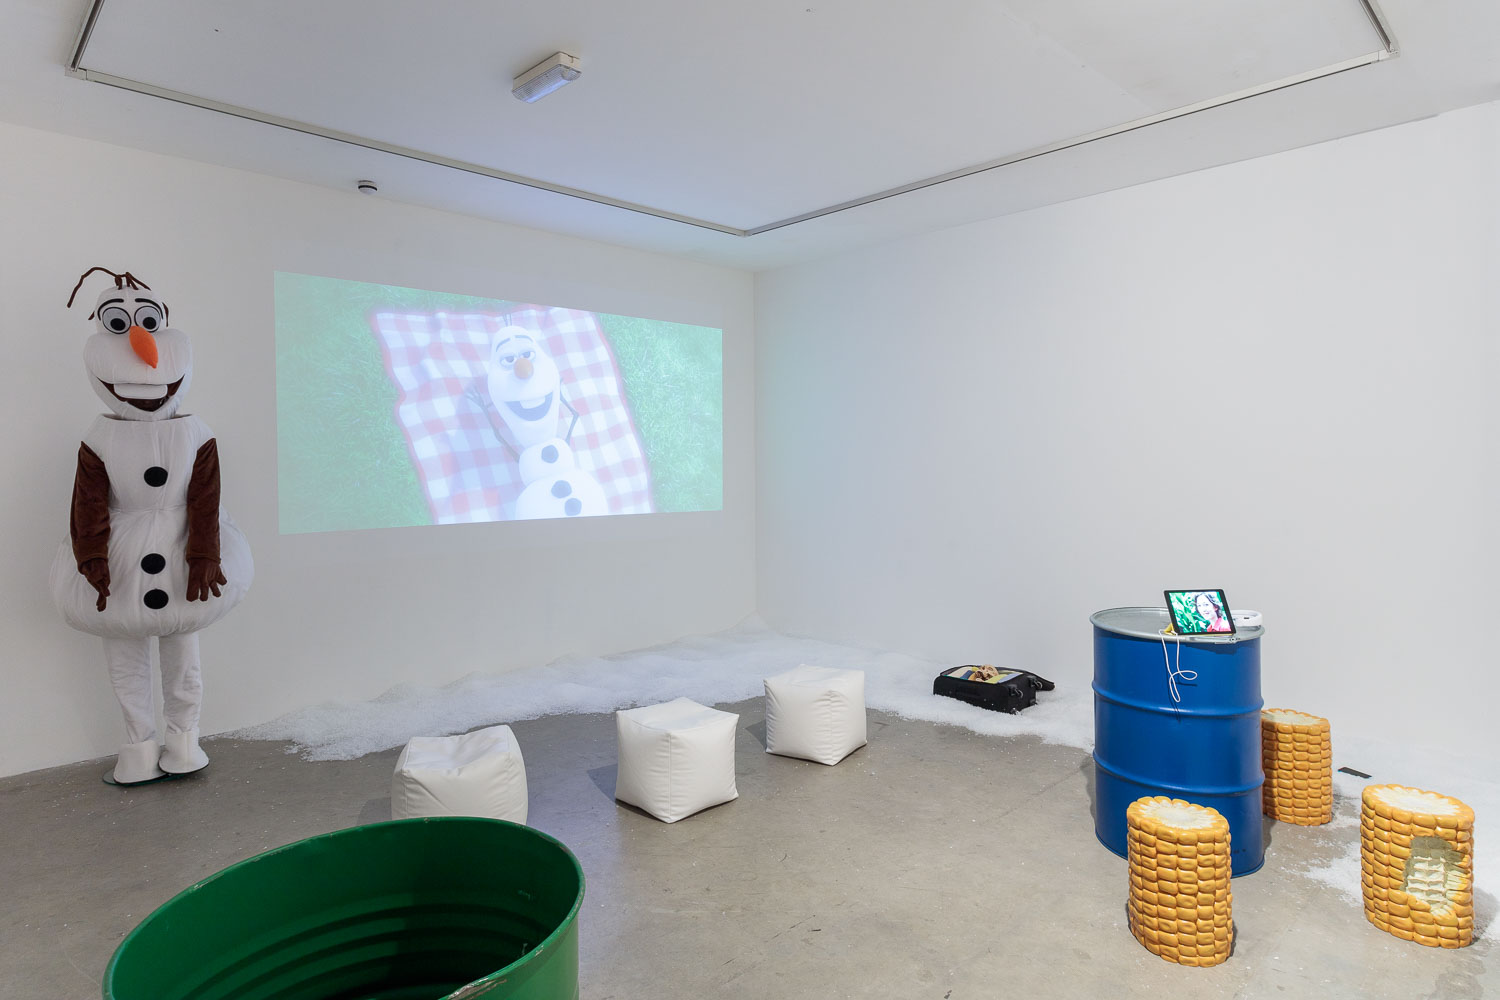 Frozen, 2015, Vilma Gold, London, Installation View. Puppies Puppies